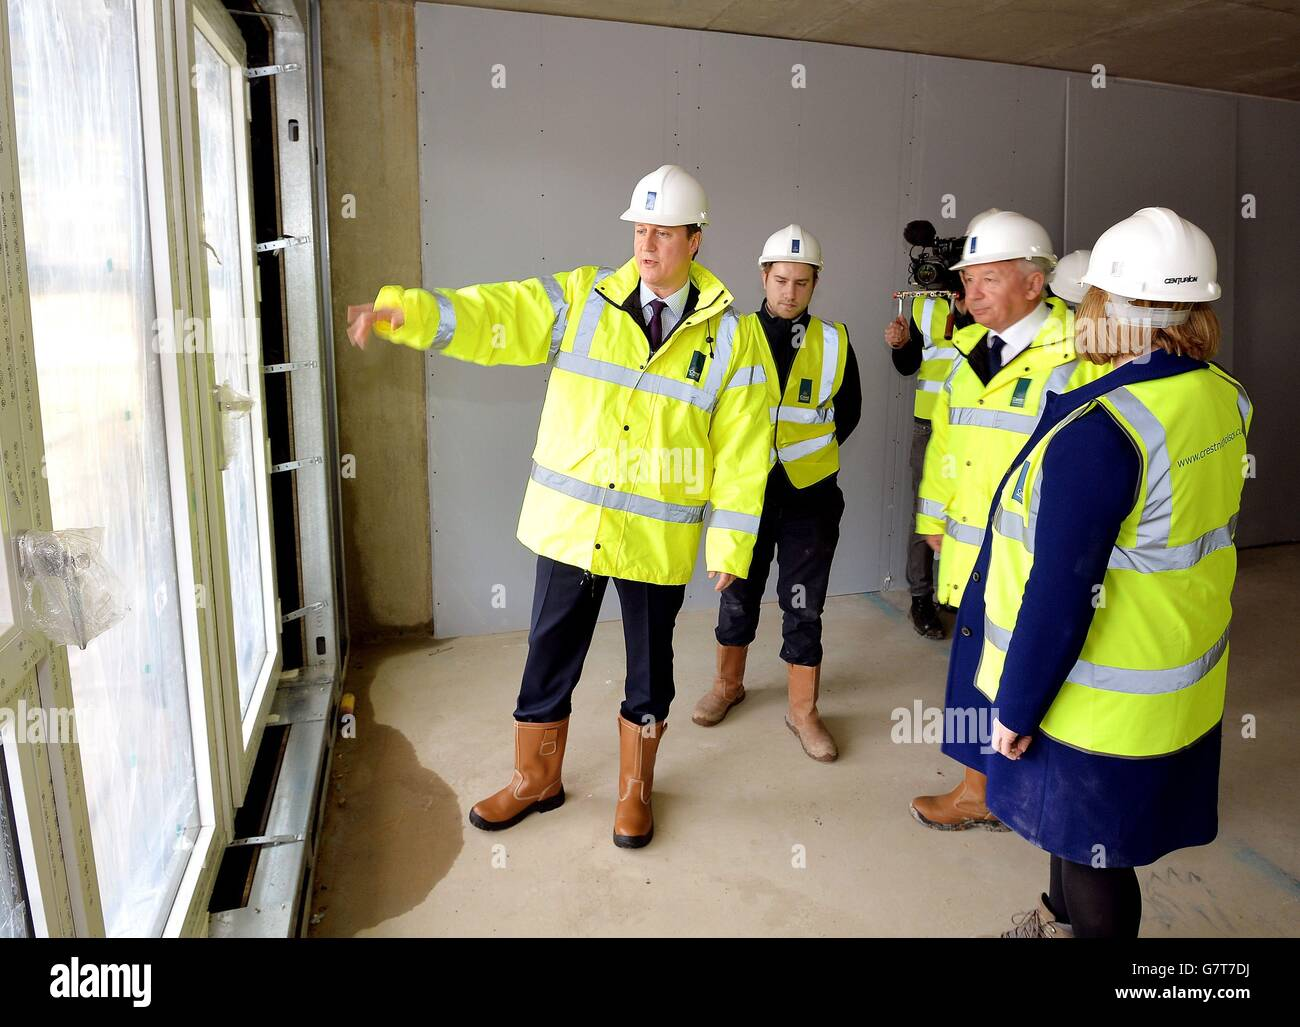 Prime Minister David Cameron views building work nearing completion with crest Building CEO Steve Stone (third left), during a visit to a building site where they are constructing private flats in Isleworth, west London. Stock Photo